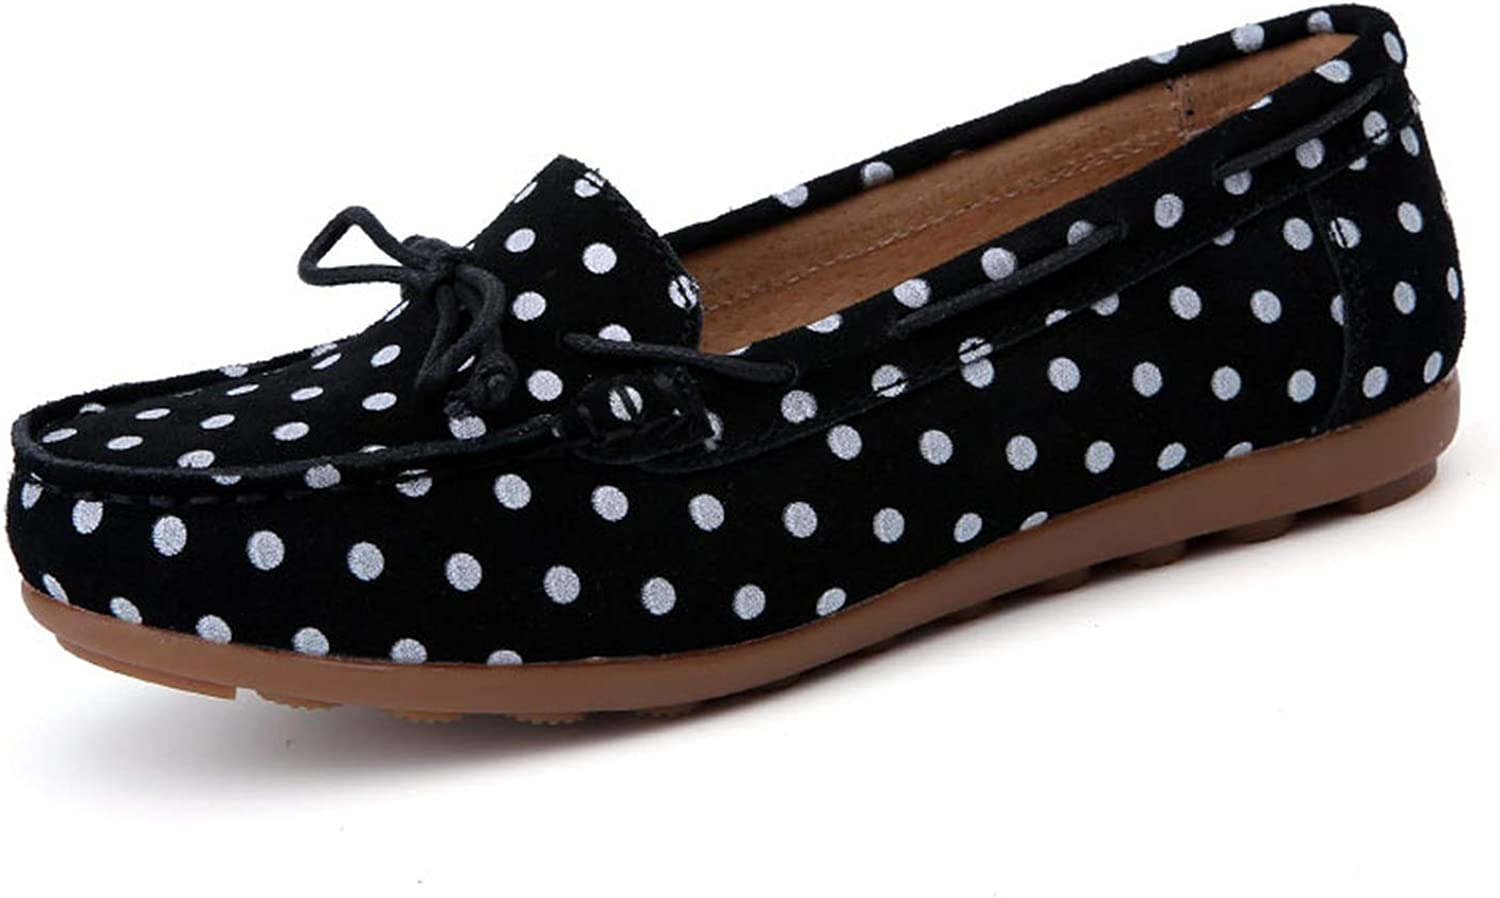 Be fearless Leather Women's Loafers Polka Dot Soft Slip On Driving Loafers Women Flat shoes